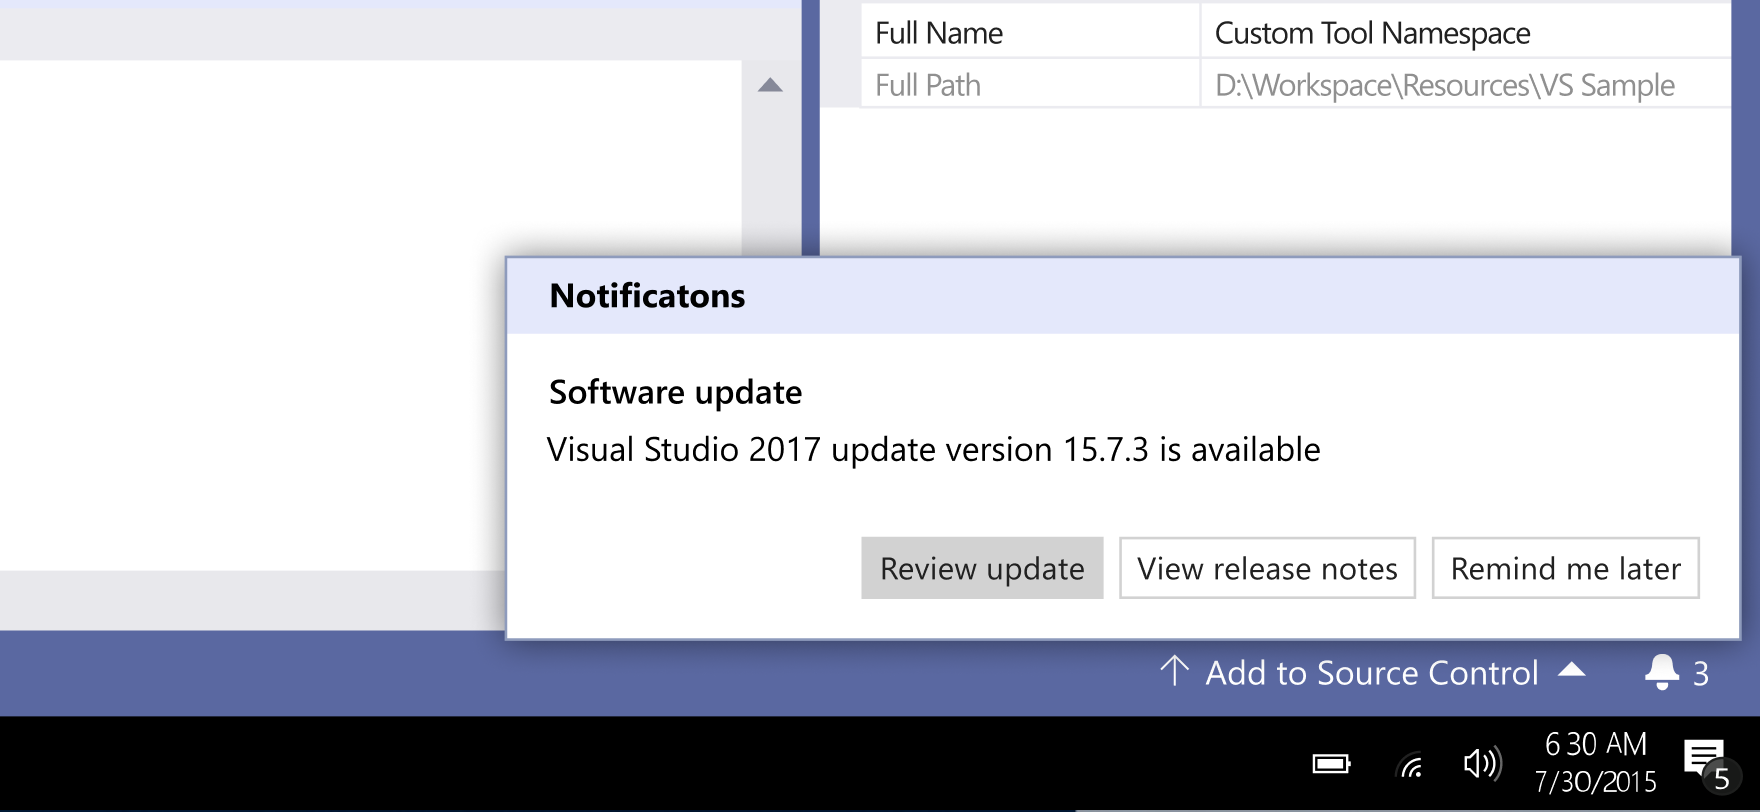 can you install visio 2019 standard using a visual studio